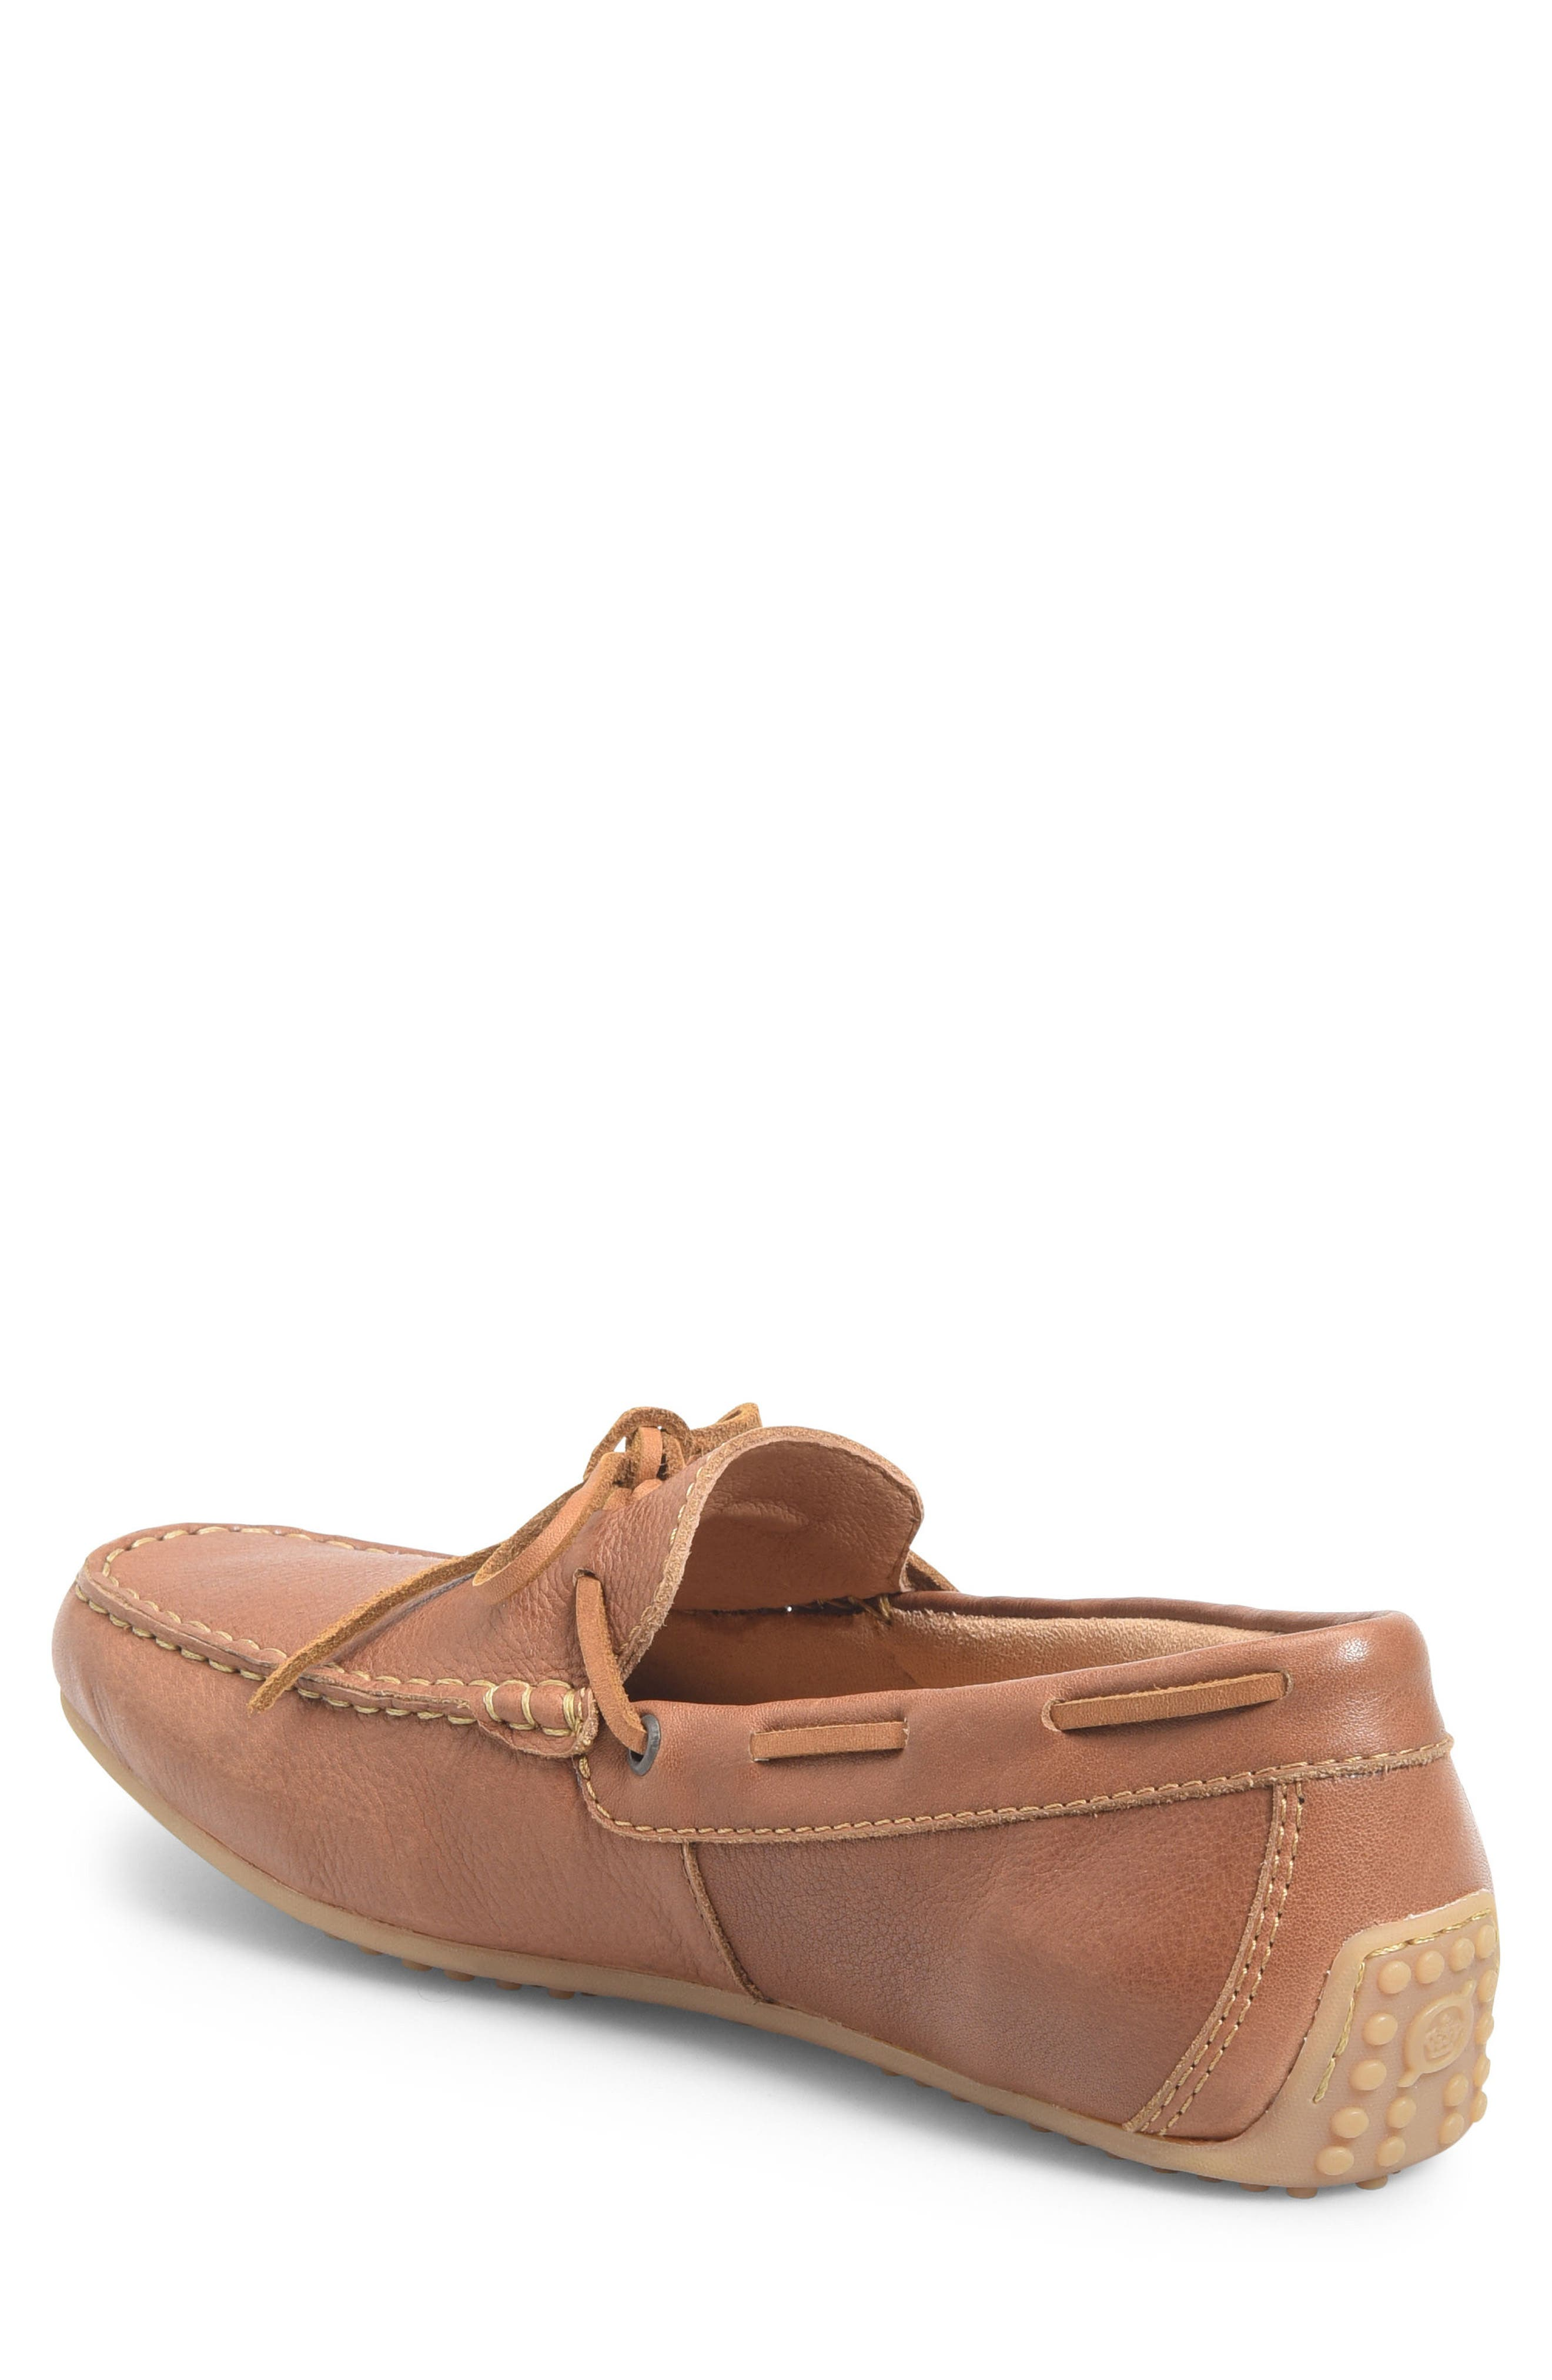 Virgo Driving Shoe,                             Alternate thumbnail 2, color,                             BROWN LEATHER